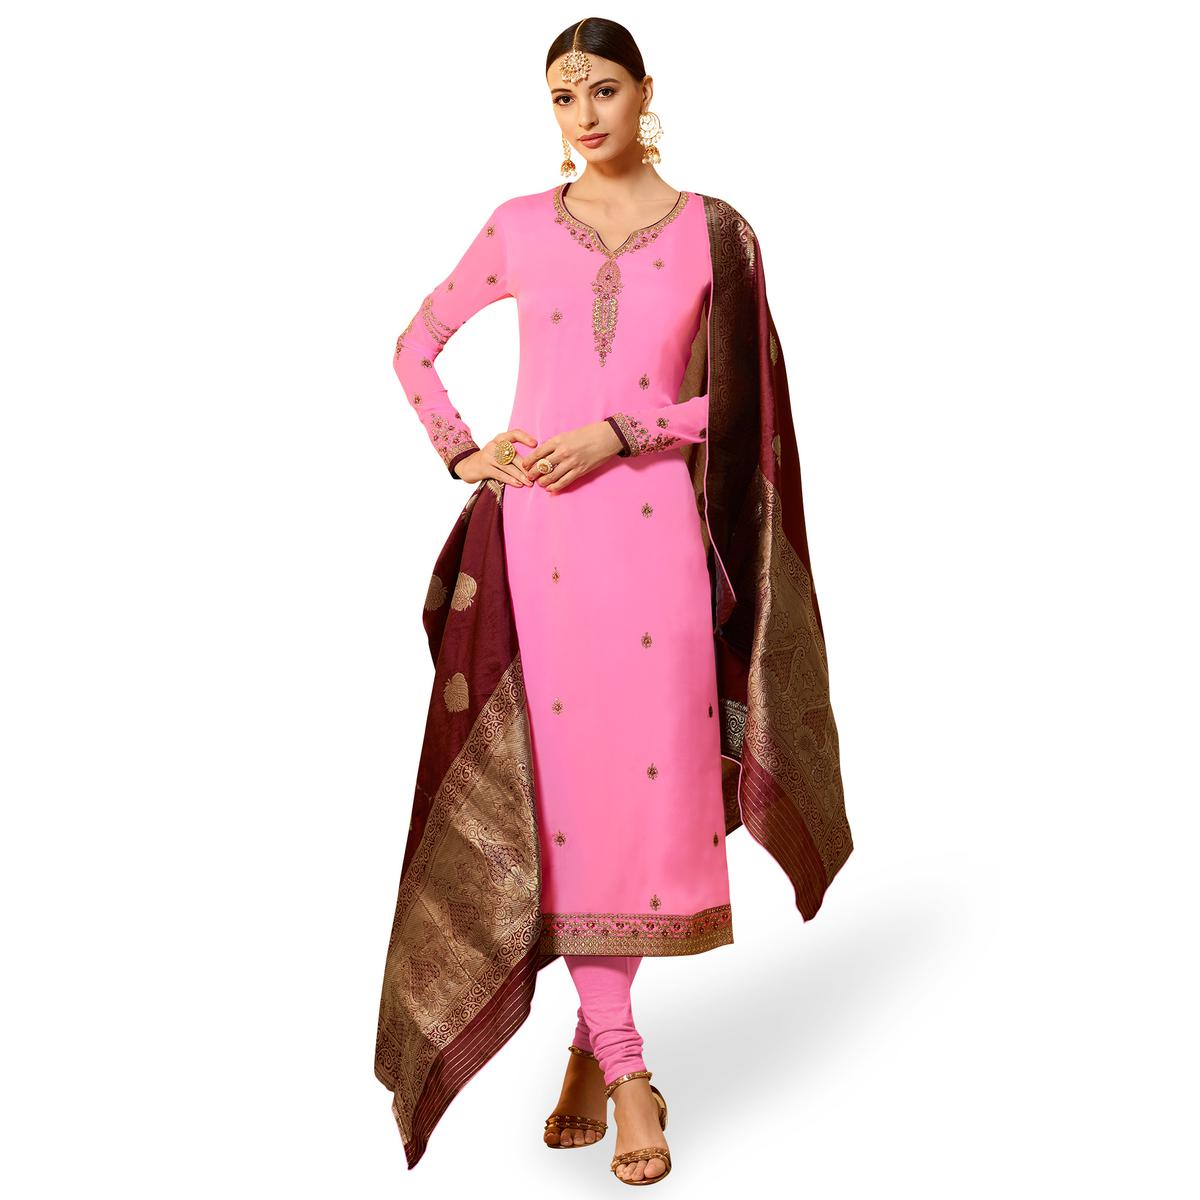 Captivating Pink Colored Partywear Embroidered Georgette Salwar Suit With Banarasi Dupatta